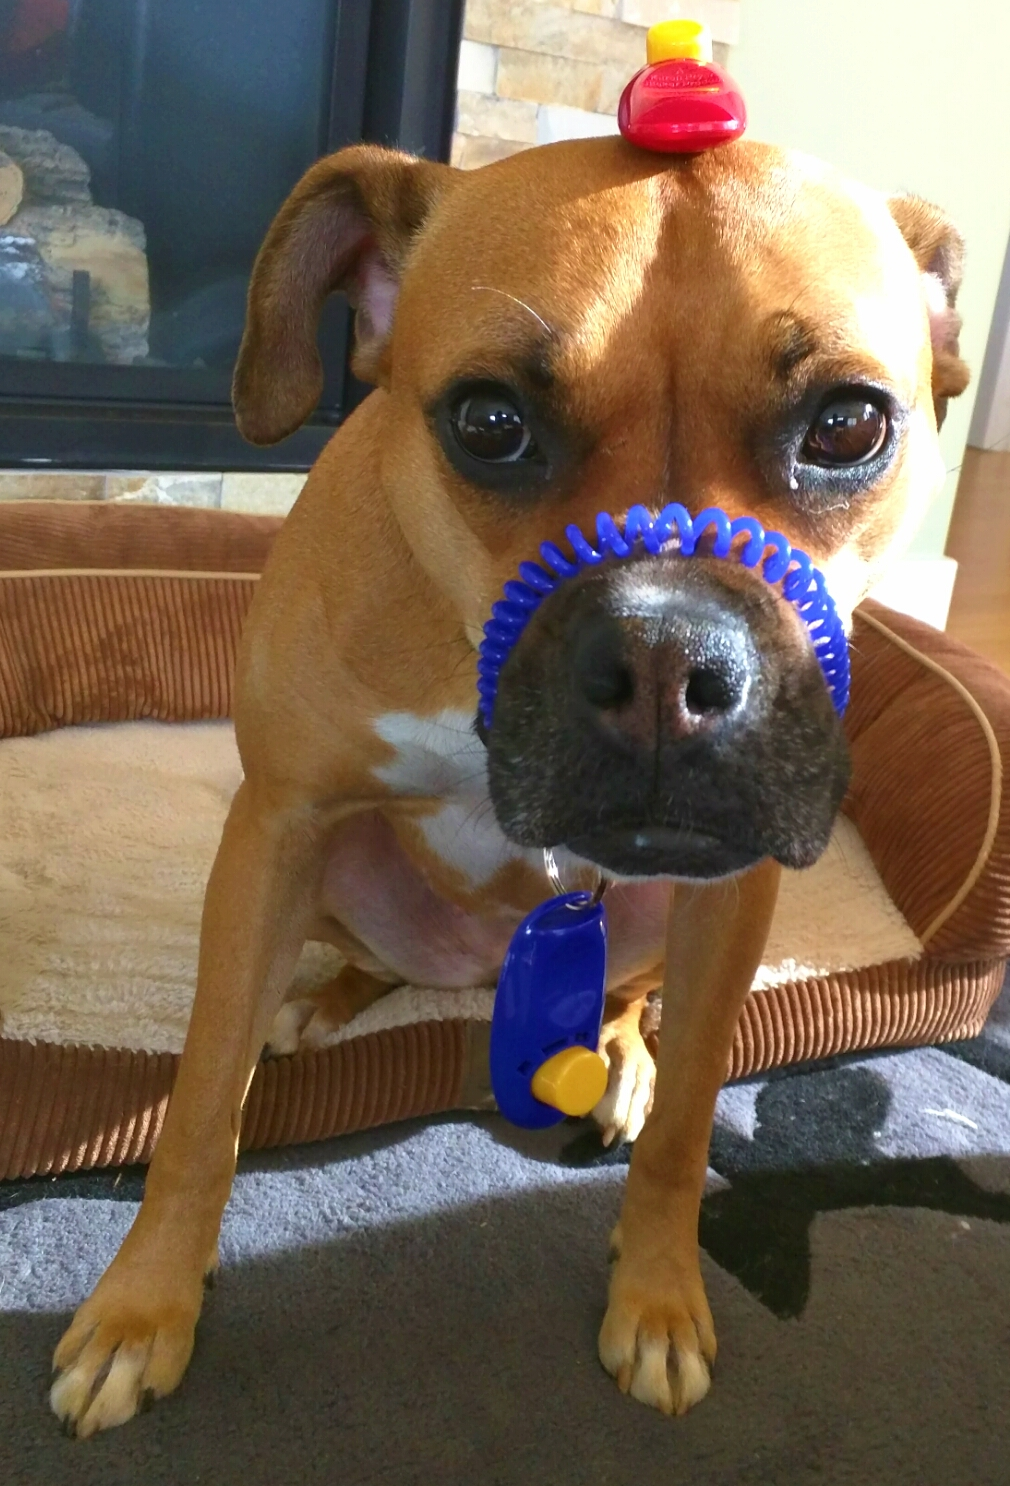 dog with clickers on face